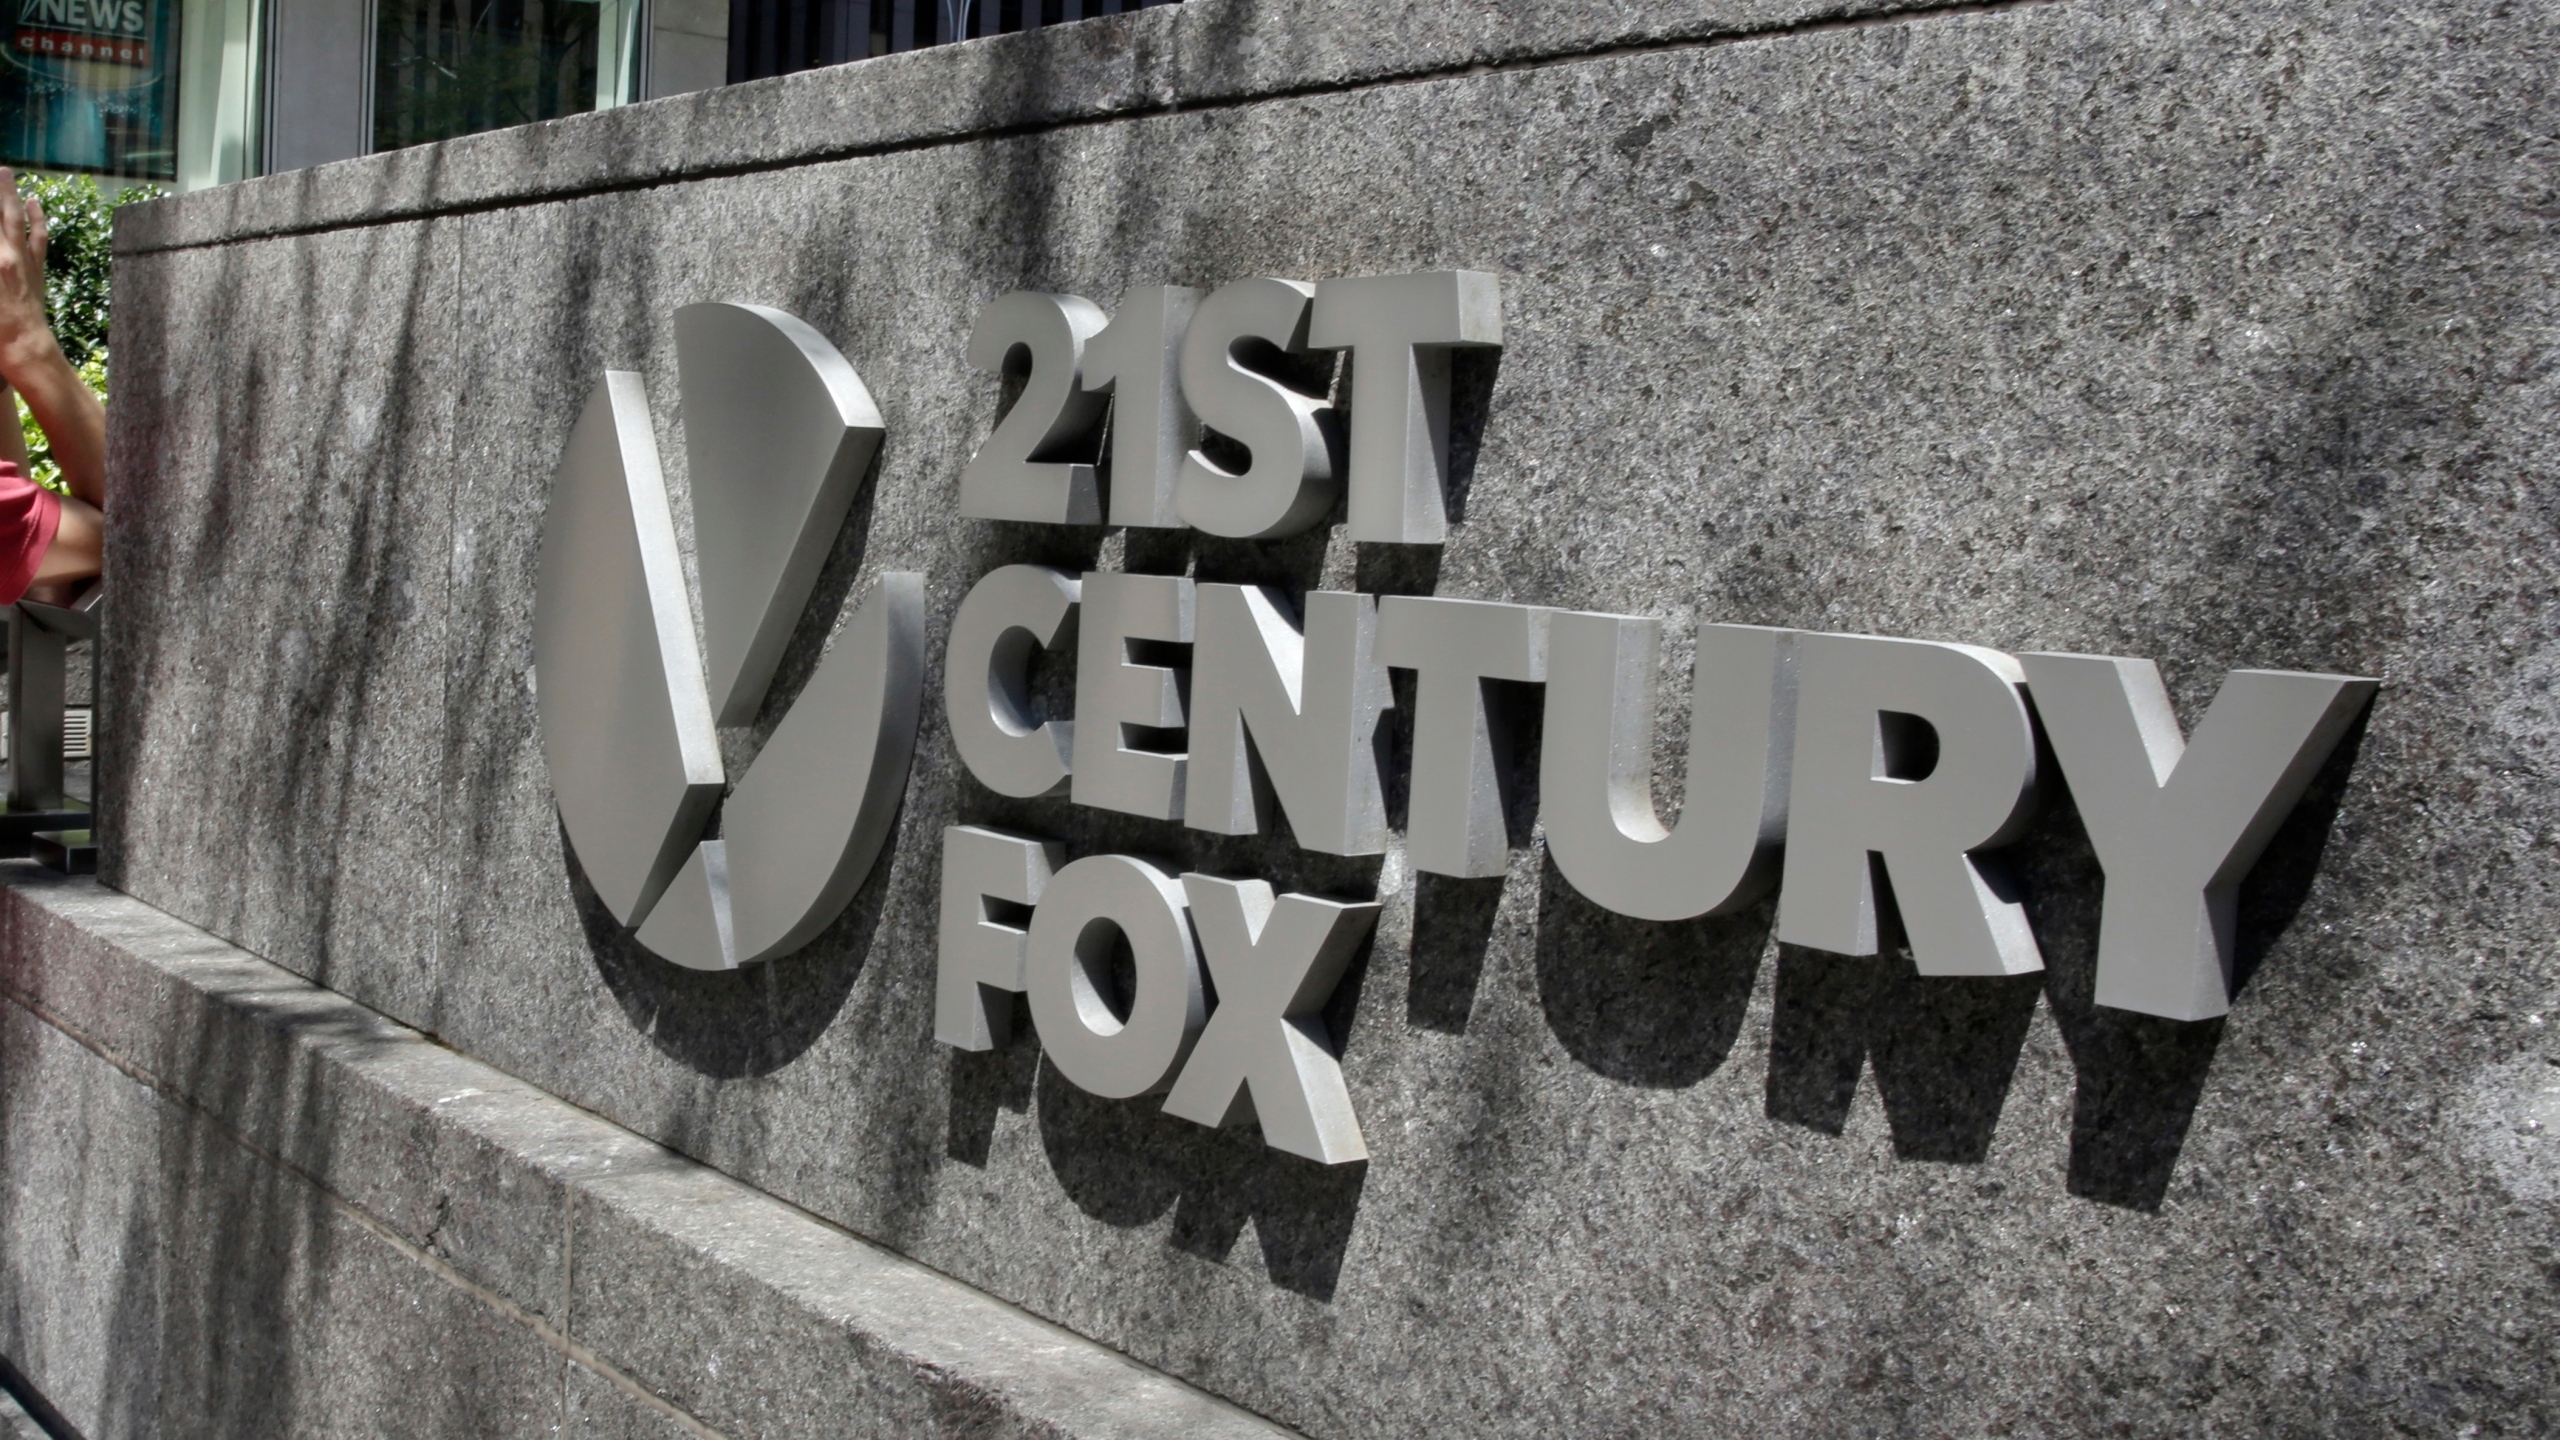 Comcast_Twenty_First_Century_Fox_31875-159532.jpg79651245